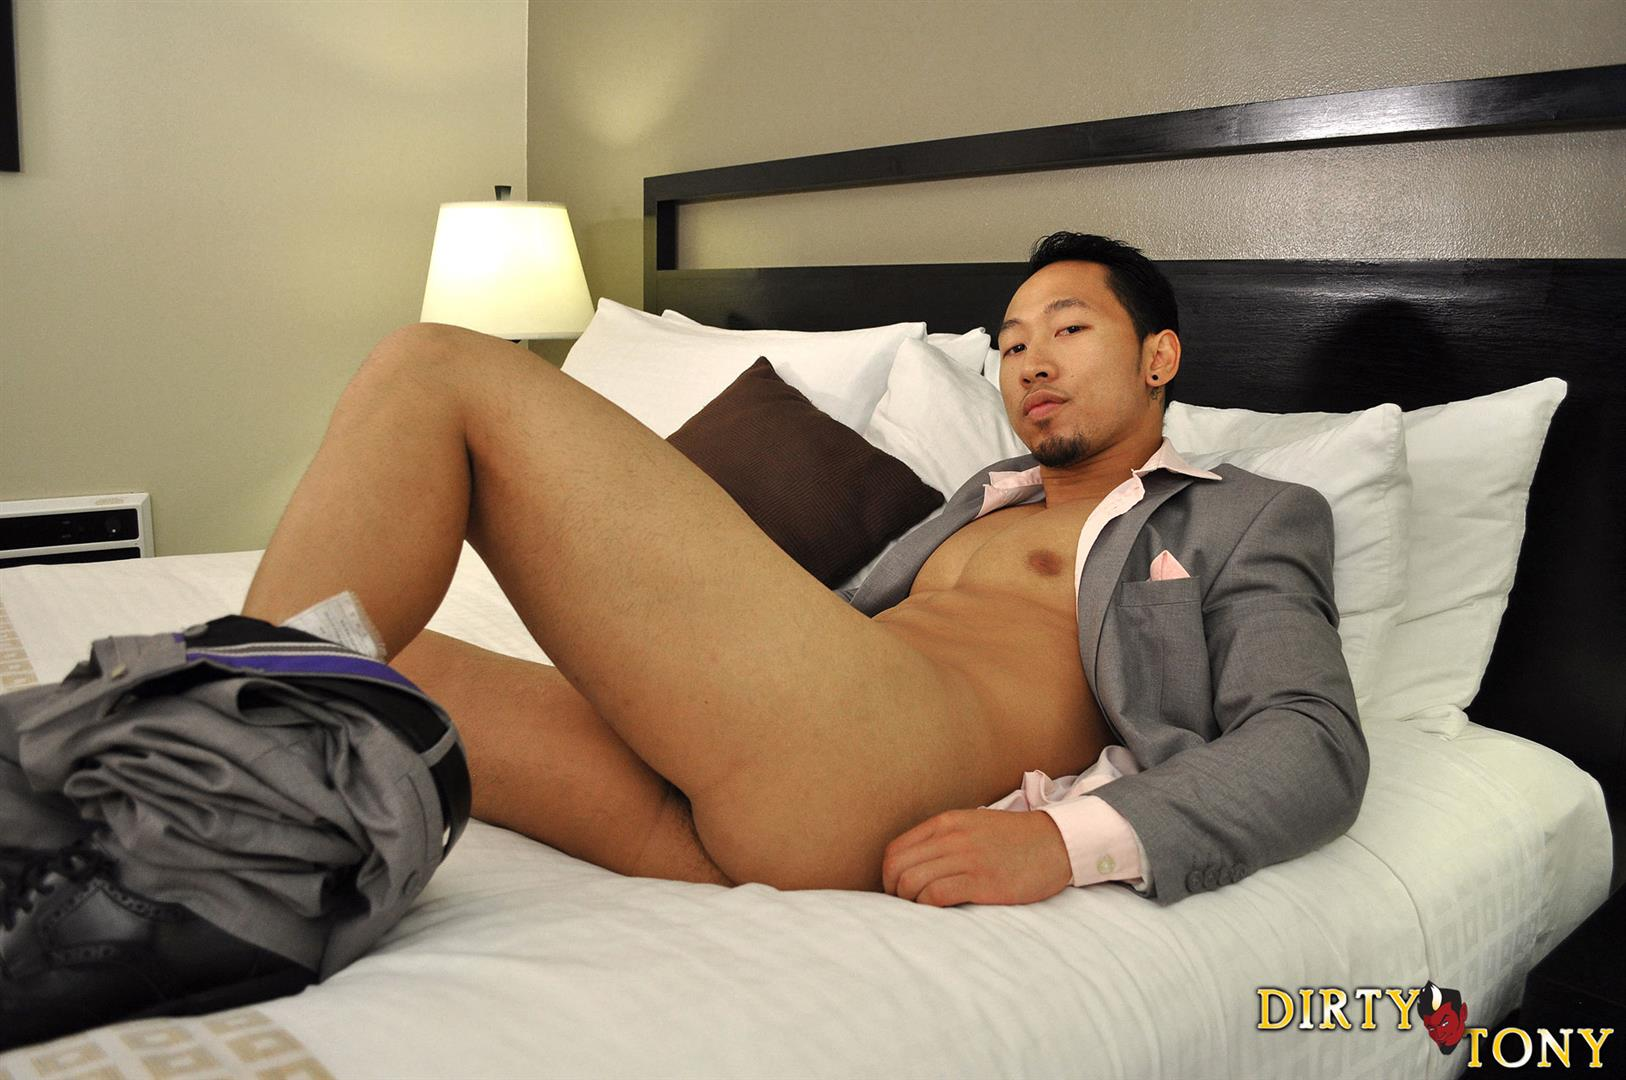 Dirty-Tony-Ryan-Allen-Asian-Guy-In-Suit-With-A-Big-Asian-Cock-Jerk-Off-Amateur-Gay-Porn-03 Amateur Asian Guy In Business Suit Stroking His Huge Asian Cock